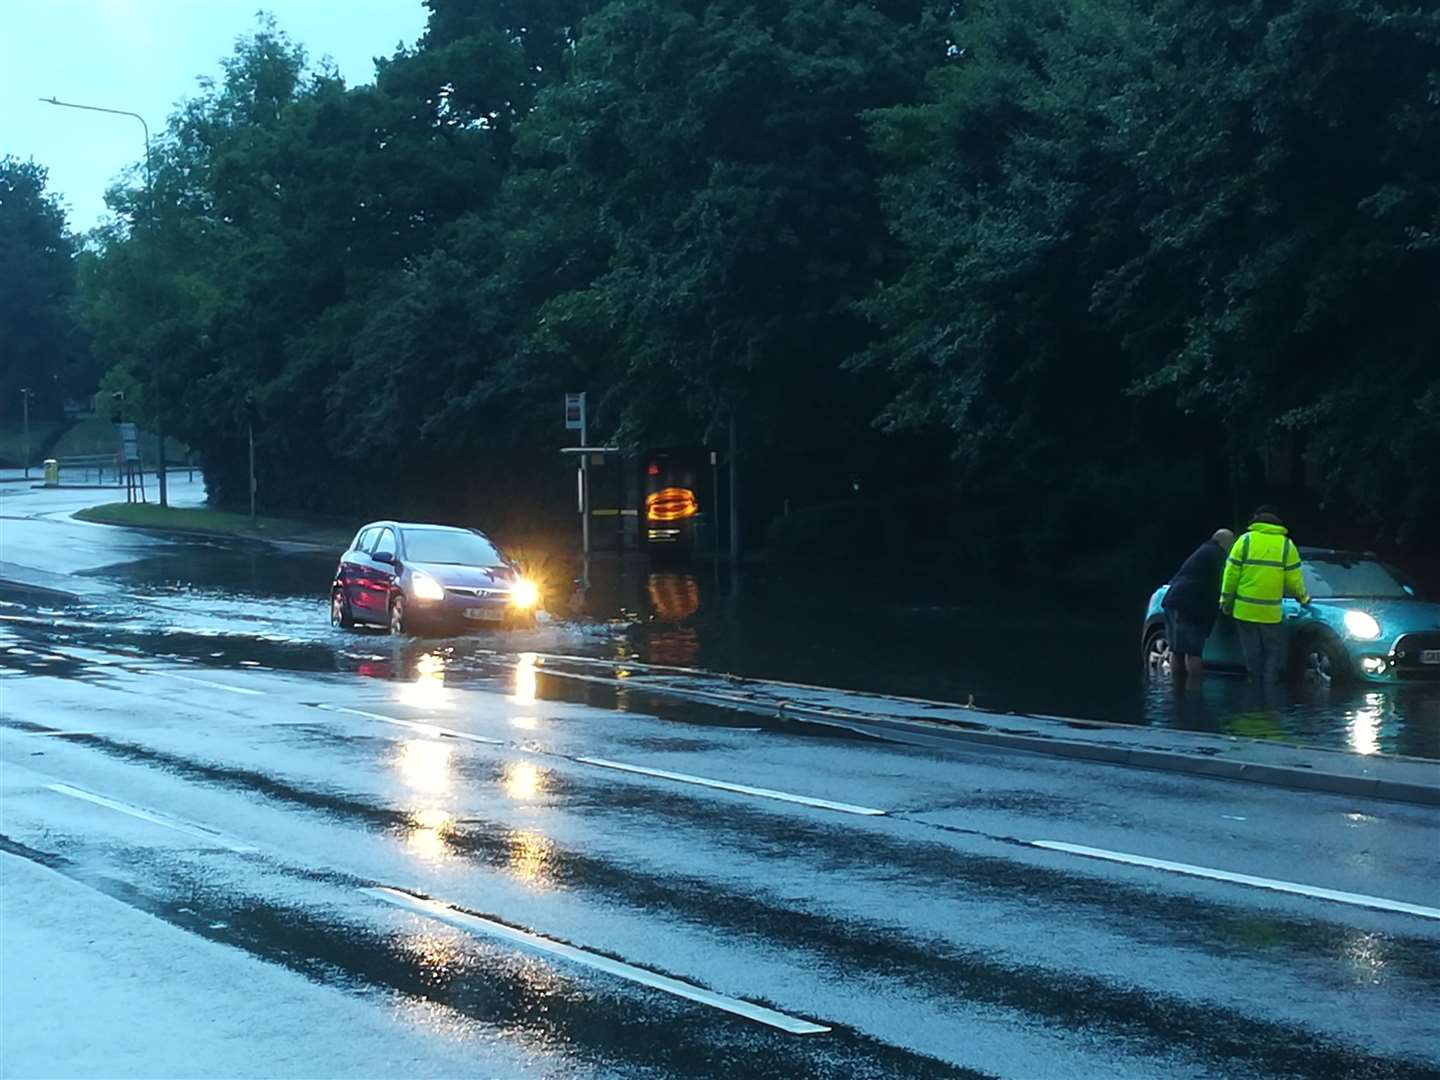 Flooding on the A20 London Road, Aylesford in June 2019 (12160355)